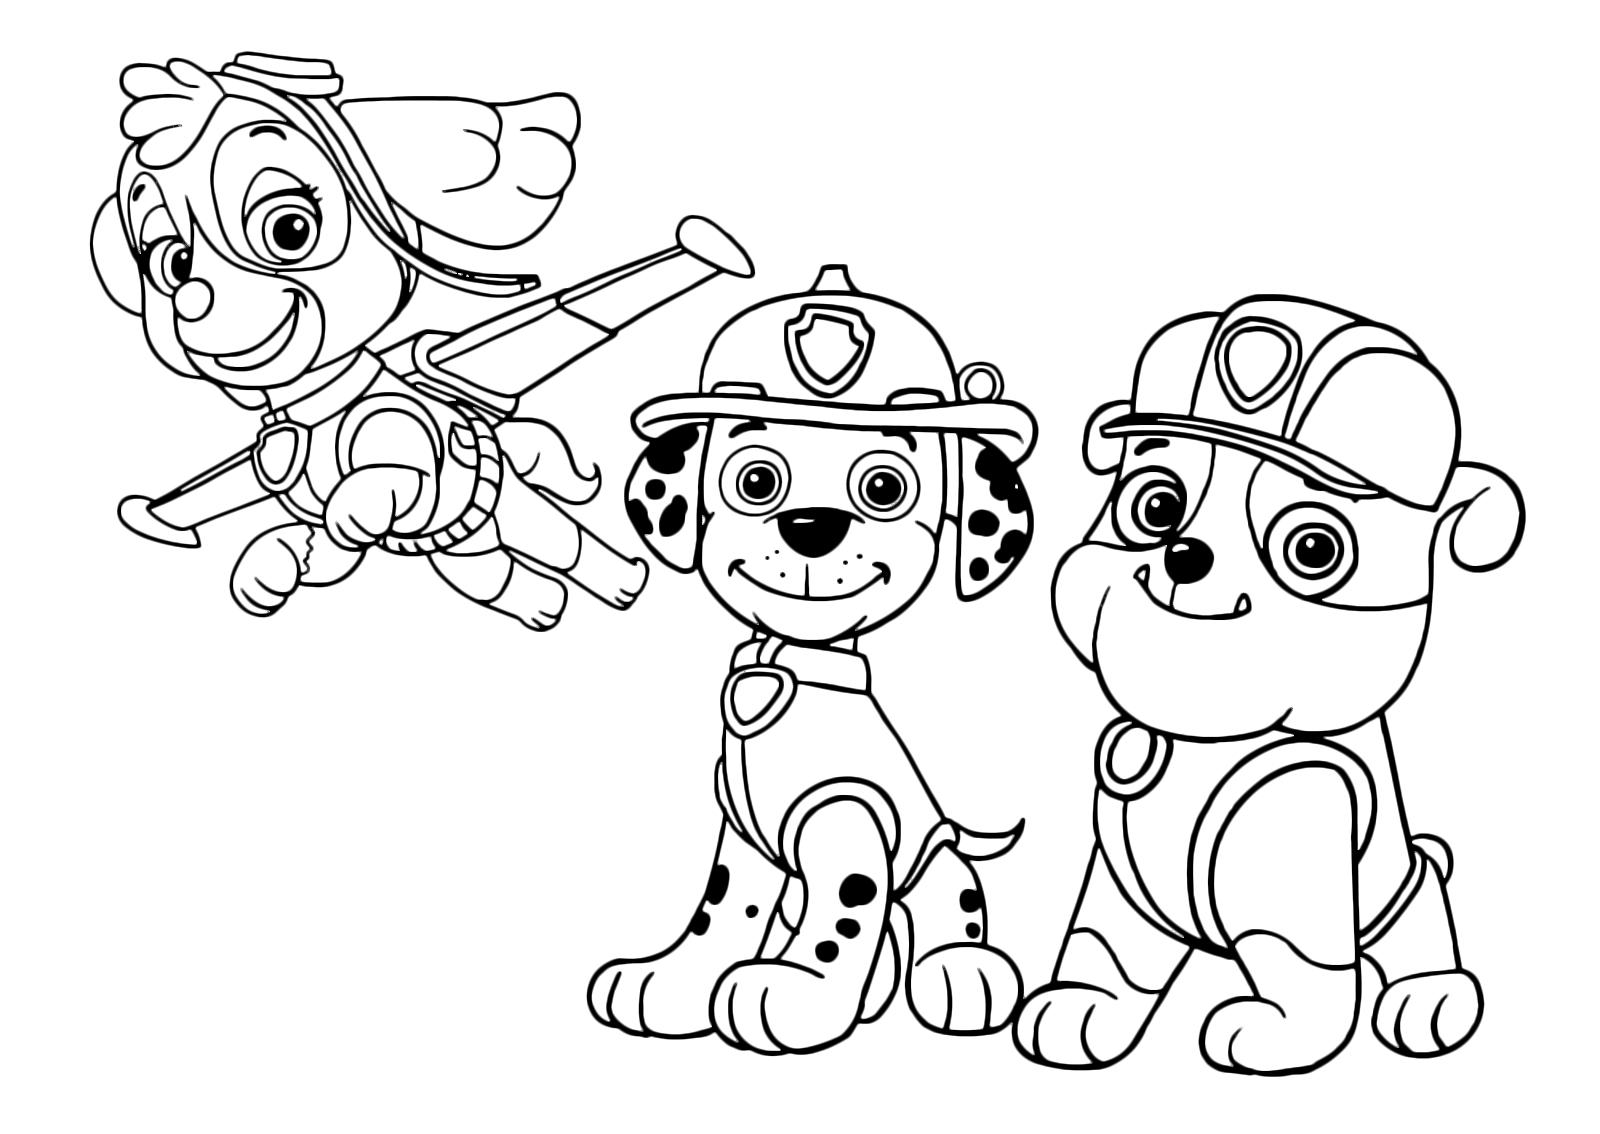 paw patrol marshall coloring paw patrol coloring pages marshall and firetruck paw marshall coloring patrol